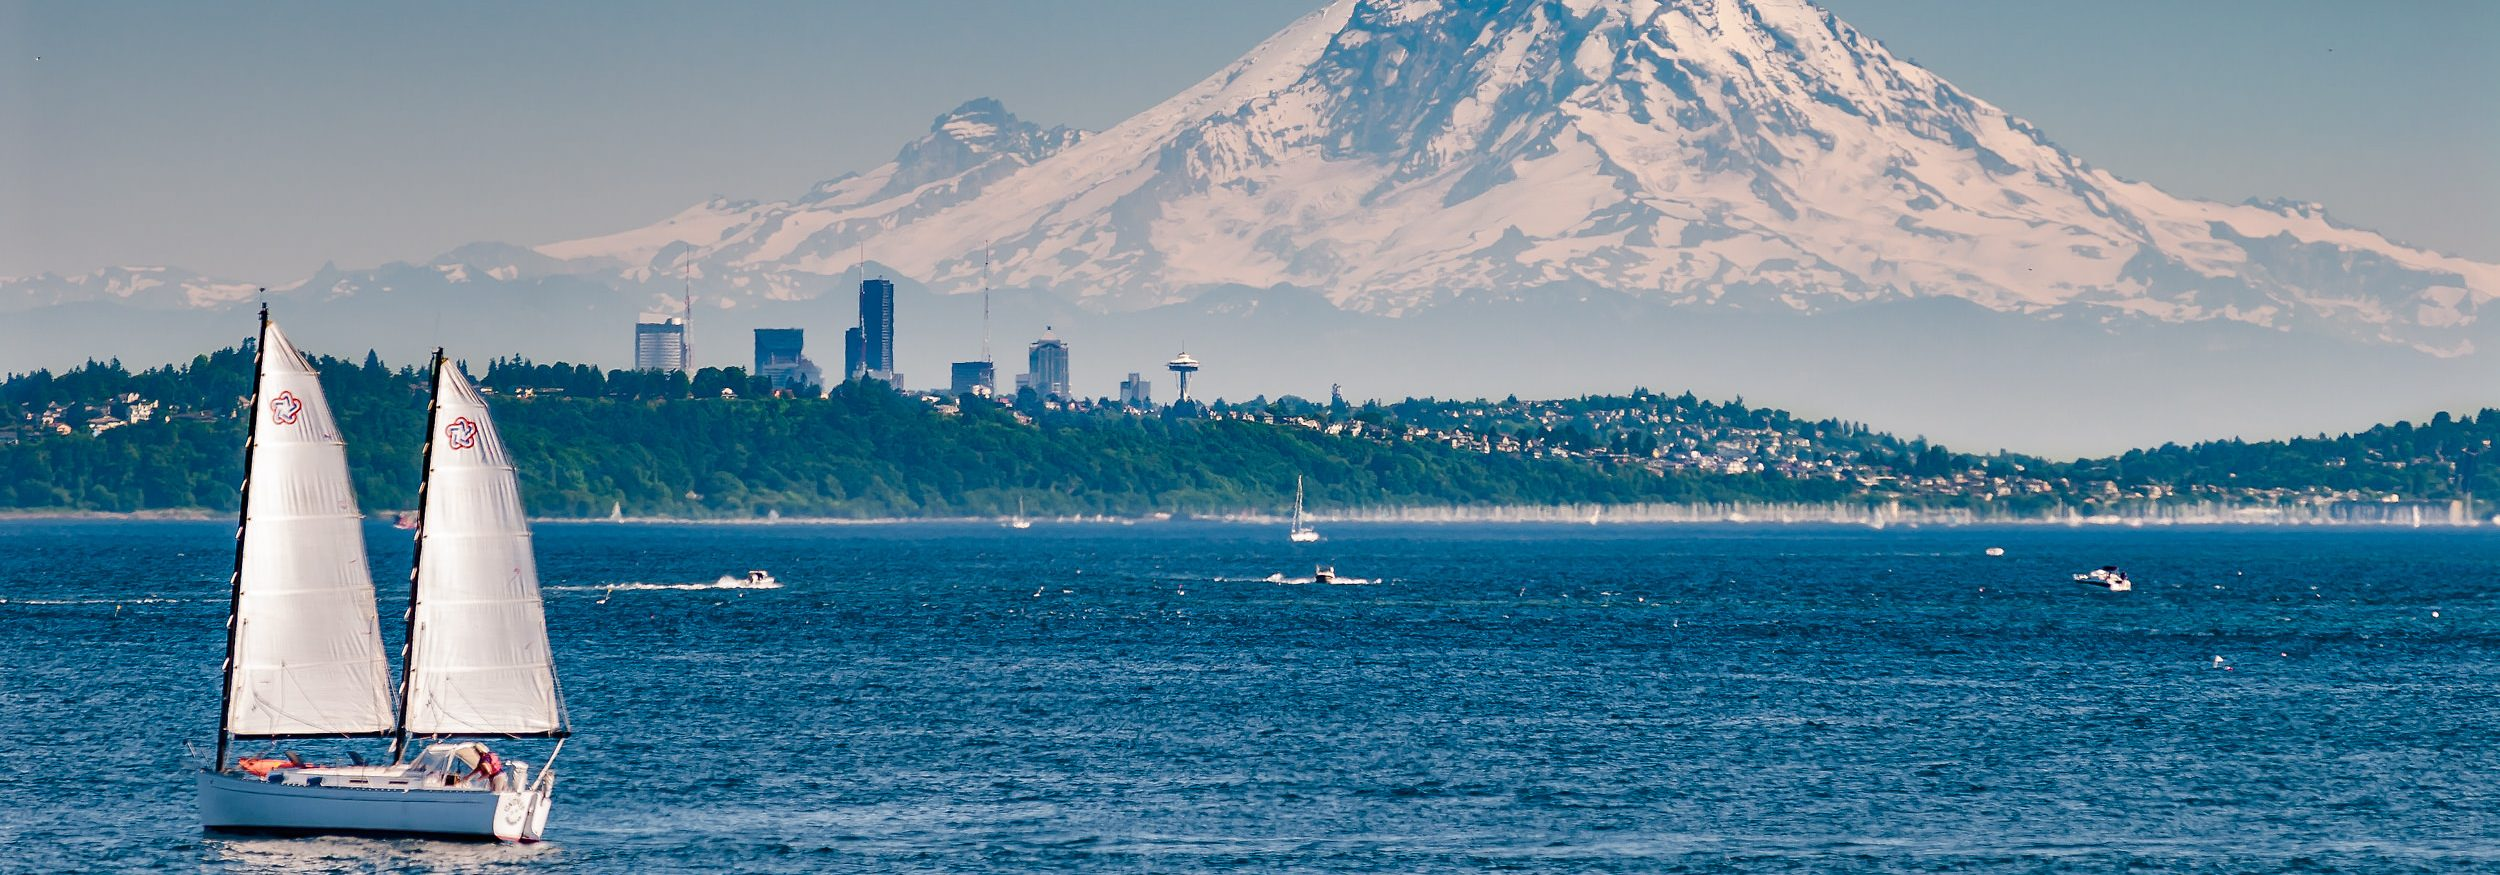 Mt Ranier background over puget sound